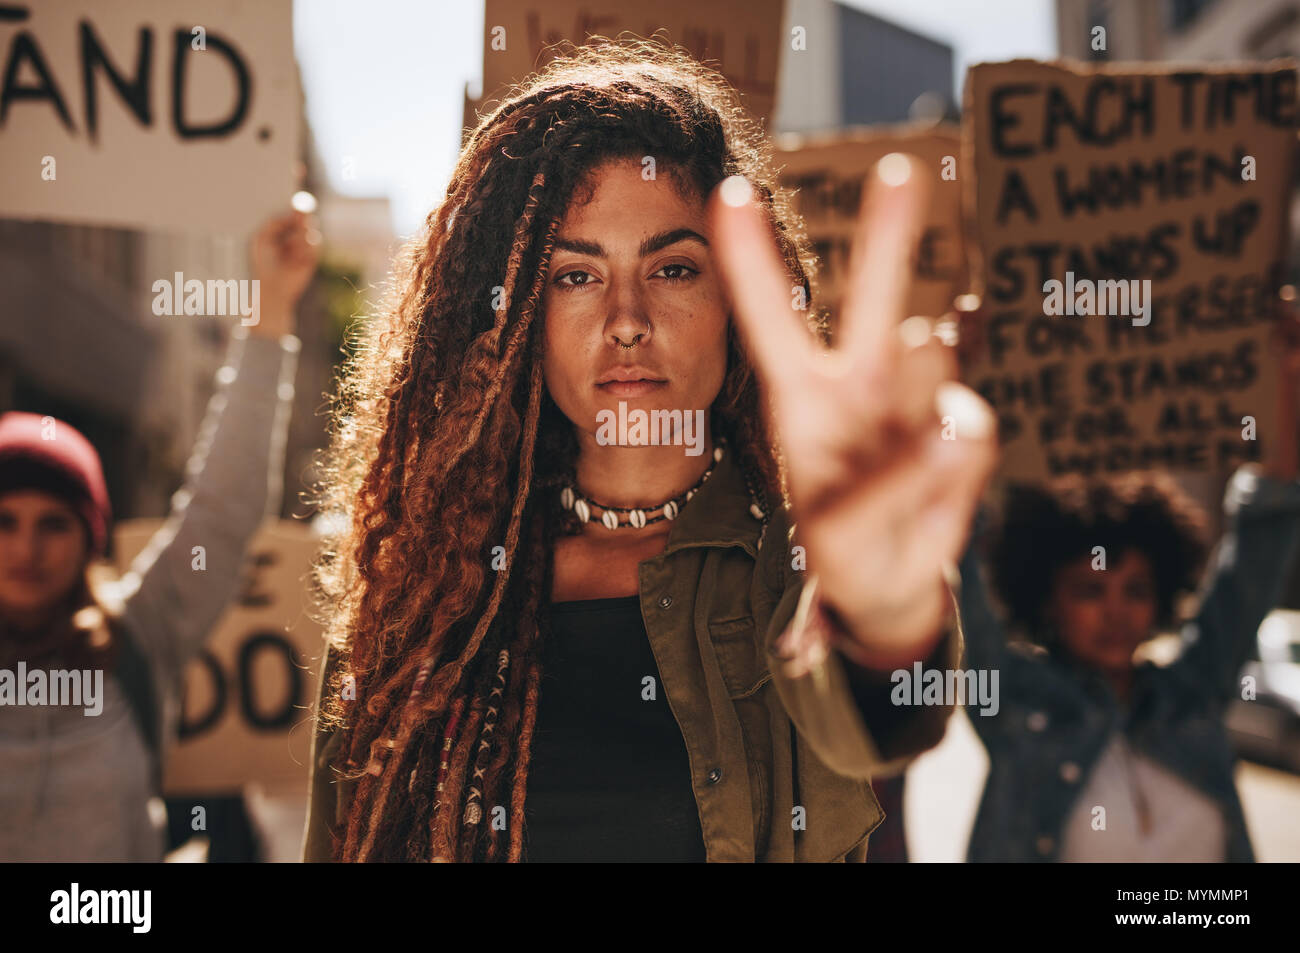 Woman showing a peace sign during protest. Woman with group of females protesting outdoors on city street. - Stock Image